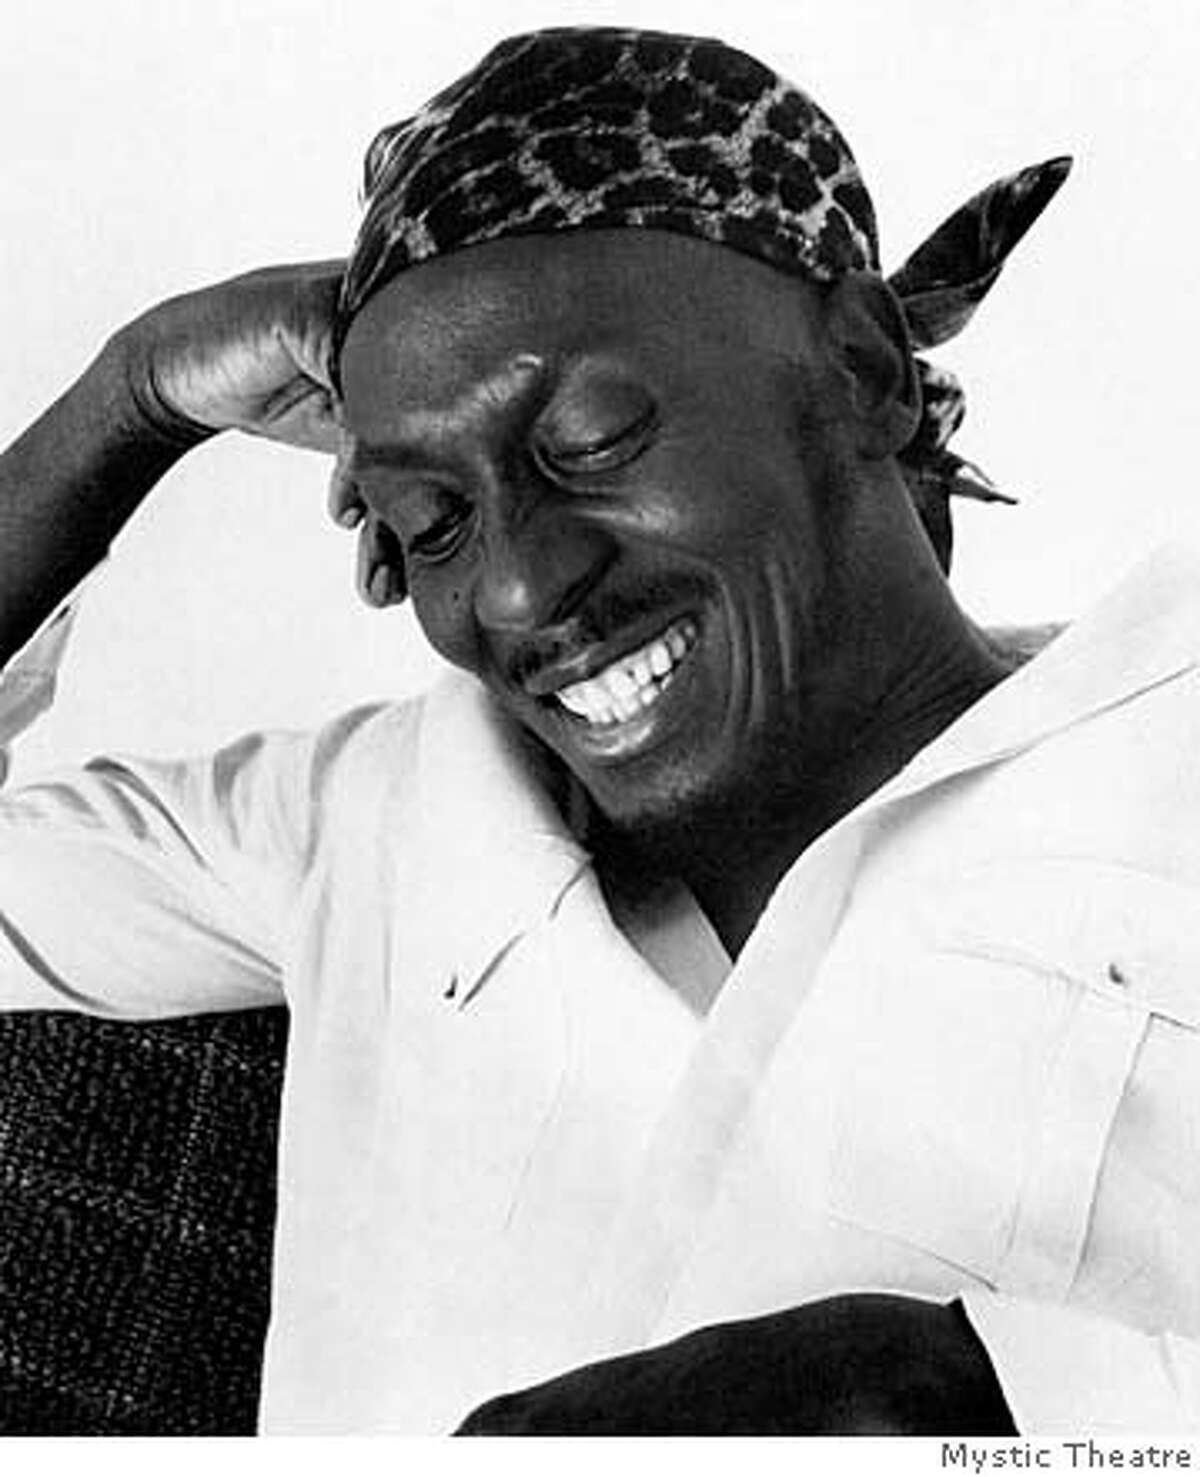 ###Live Caption:Jimmy Cliff###Caption History:jimmy cliff.JPG Jimmy Cliff Mystic Theatre August 17, 2004 HANDOUT###Notes:###Special Instructions: